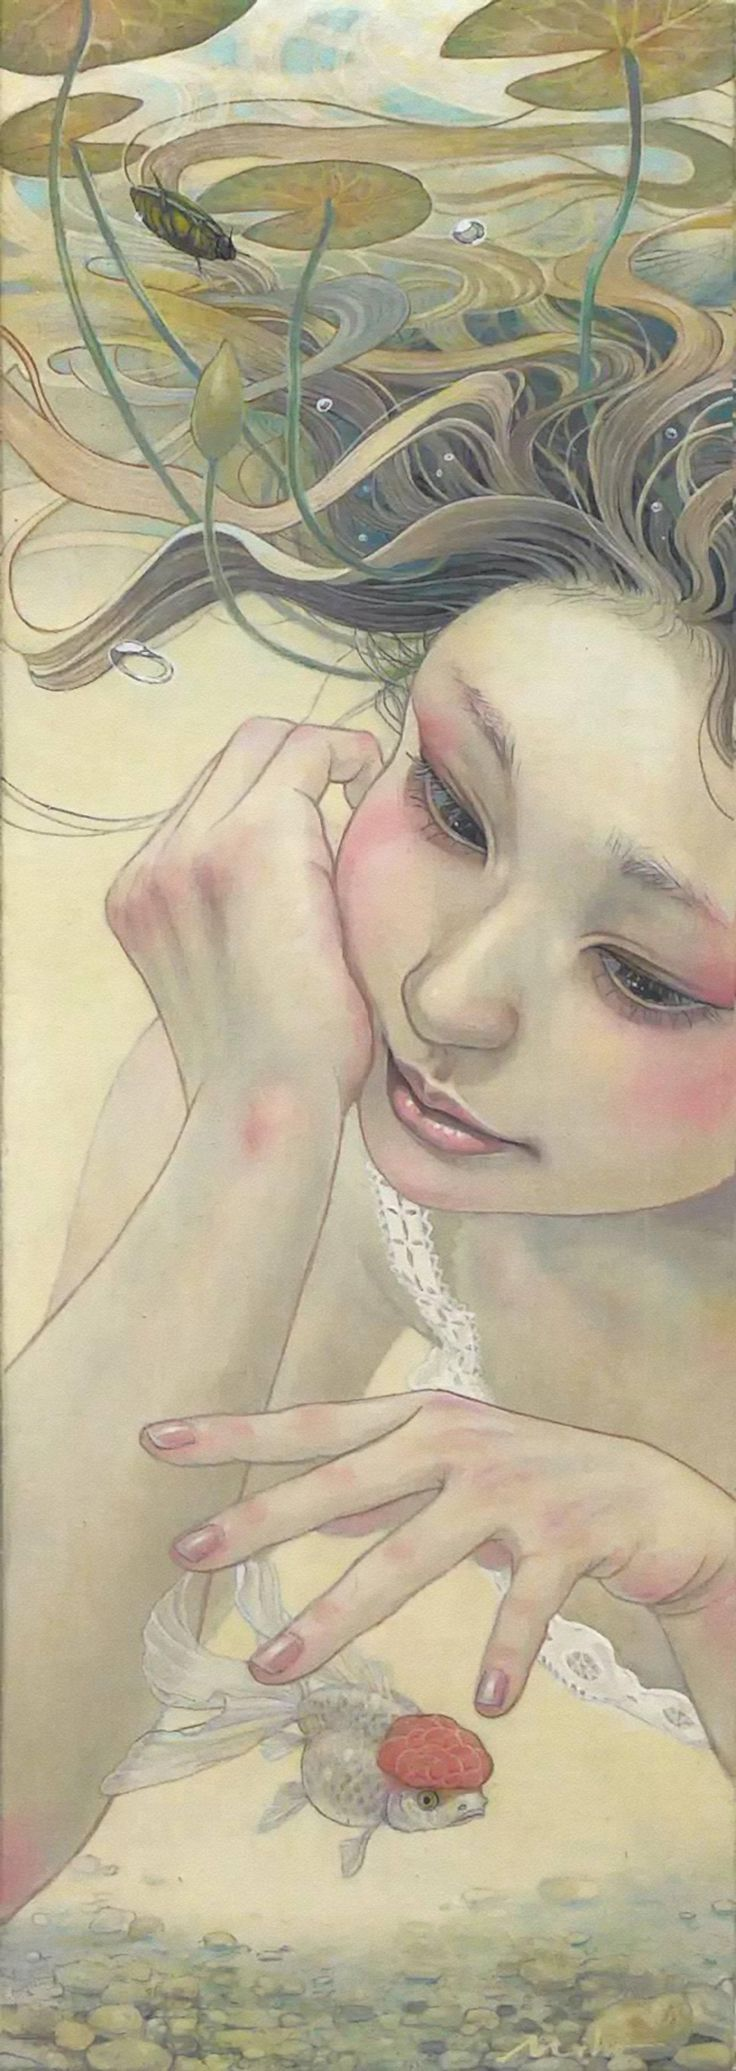 """Heart of Water"" - Miho Hirano 平野実穂, watercolor {beautiful female head hands underwater woman face portrait painting}"